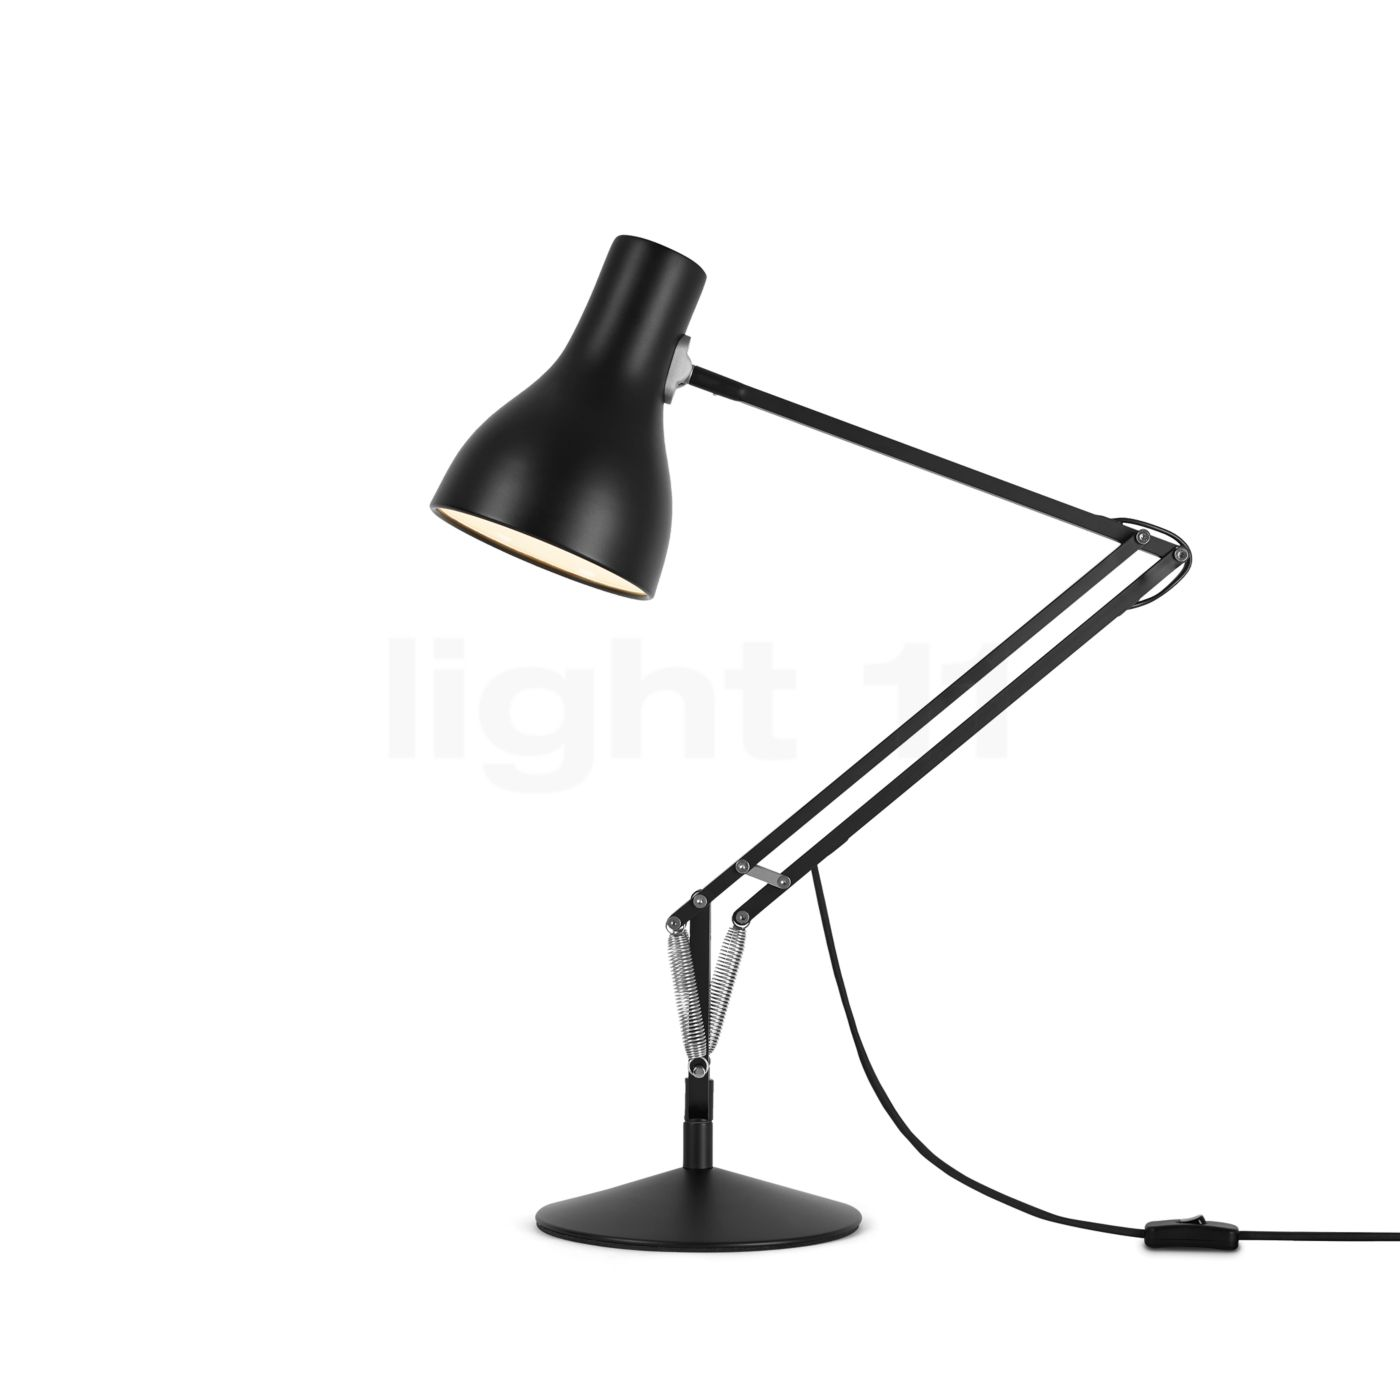 lampe anglepoise type 75 de bureau noir. Black Bedroom Furniture Sets. Home Design Ideas